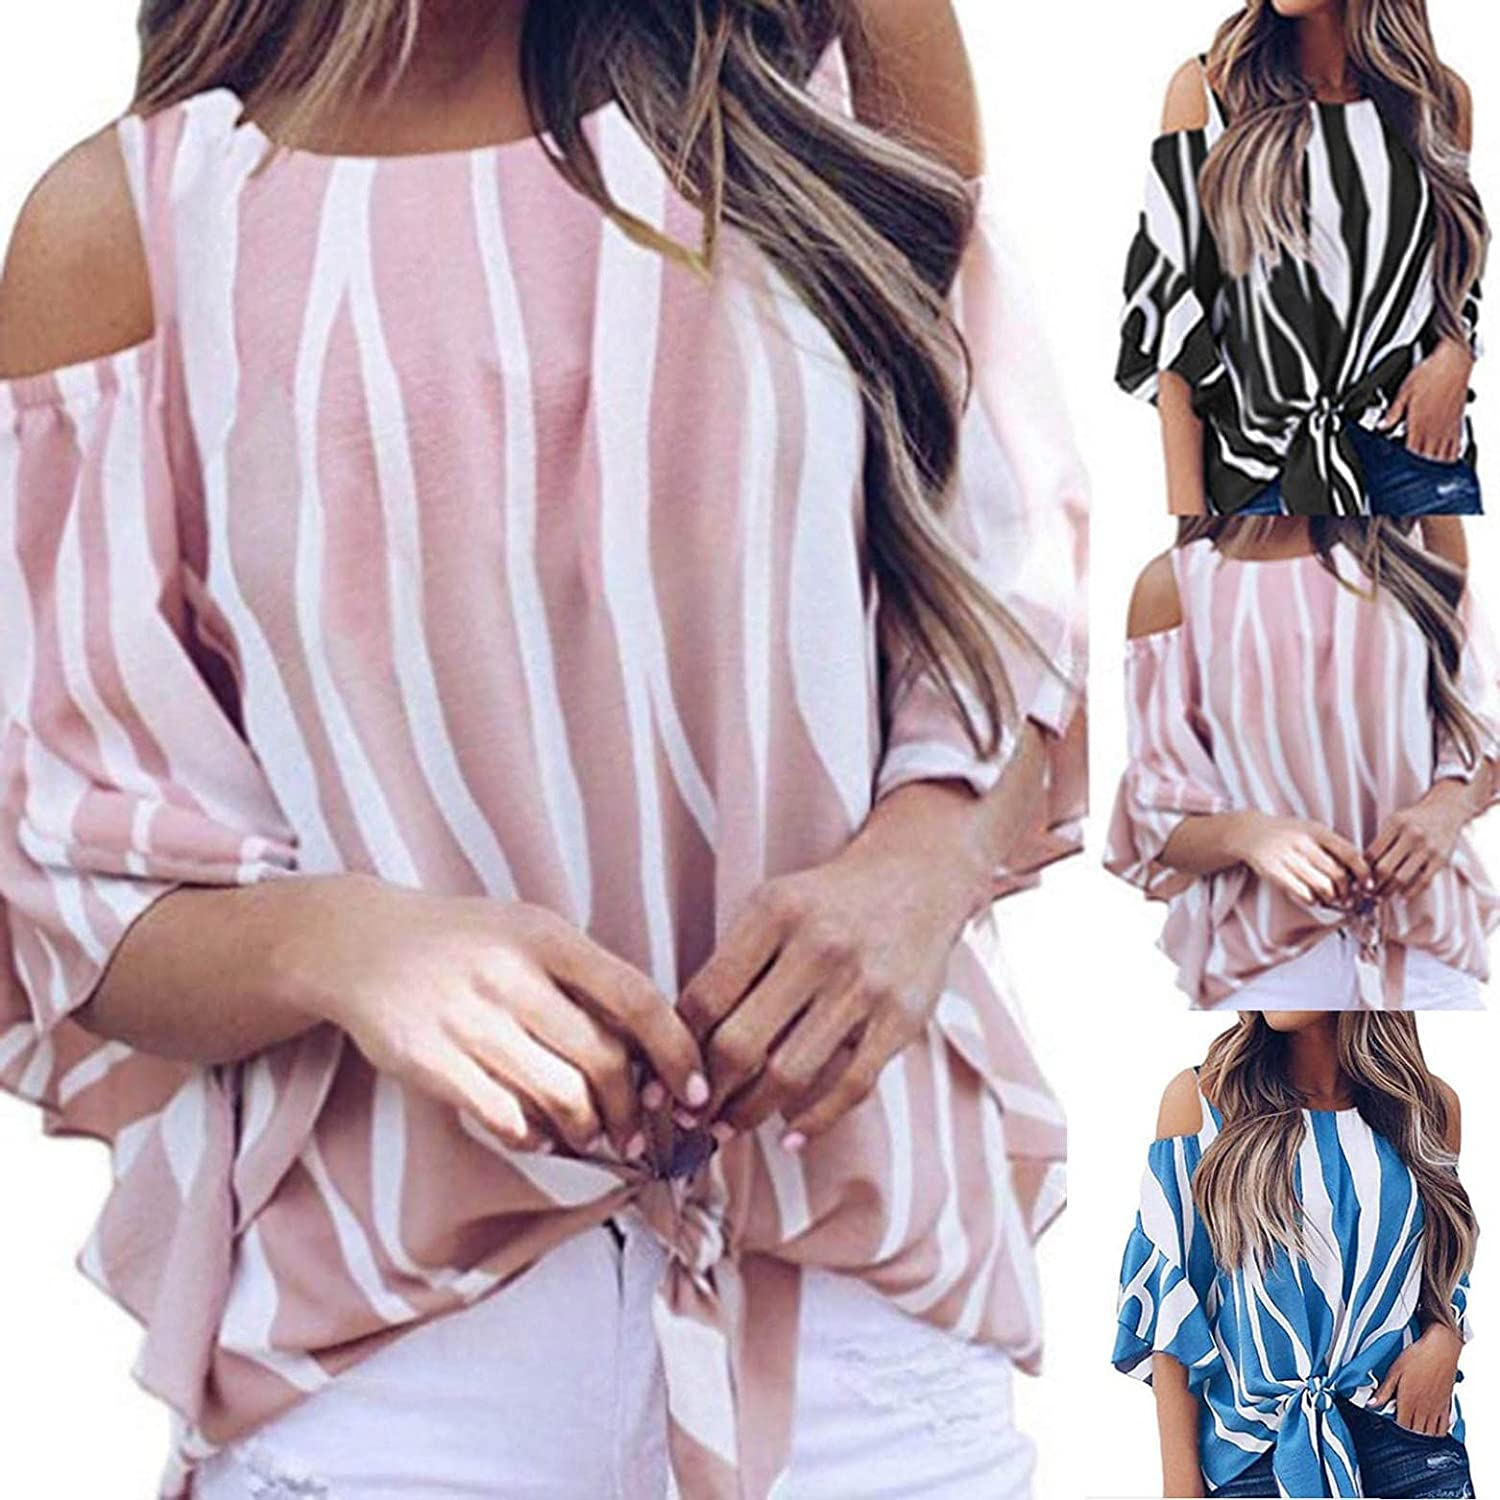 Eduavar Women Blouses and Tops, Womens Summer Striped Off The Shoulder Tops 3/4 Bell Sleeve Blouses Tie Knot T-Shirt